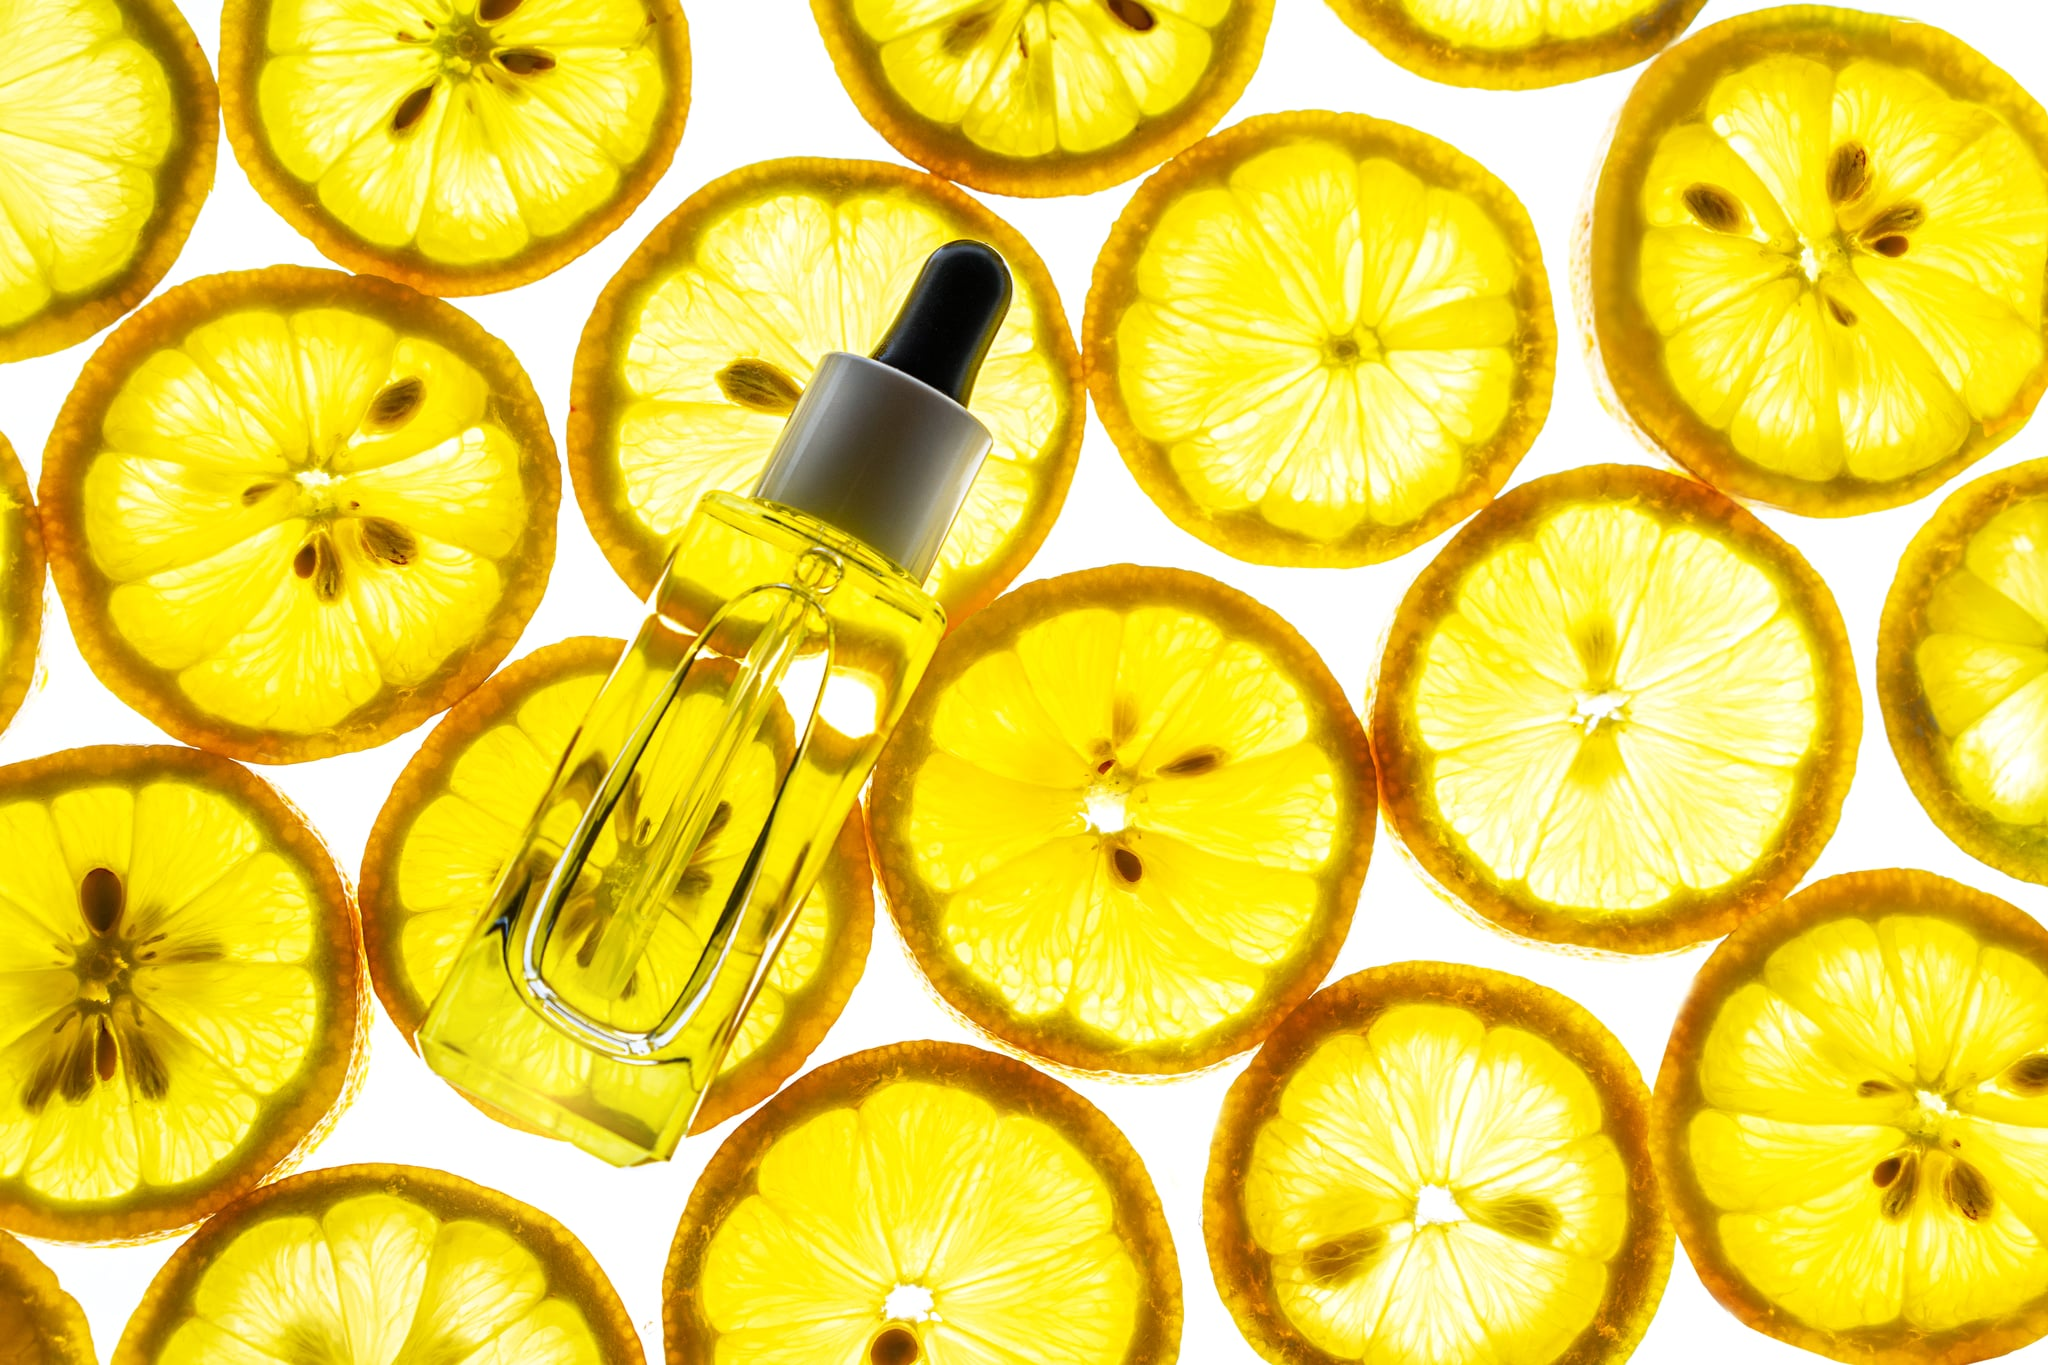 Natural vitamin c serum, skincare, essential oil product. Cosmetic with fresh juicy lemon fruit slice on lime background. Beauty product mock-up. Top view, flat lay.